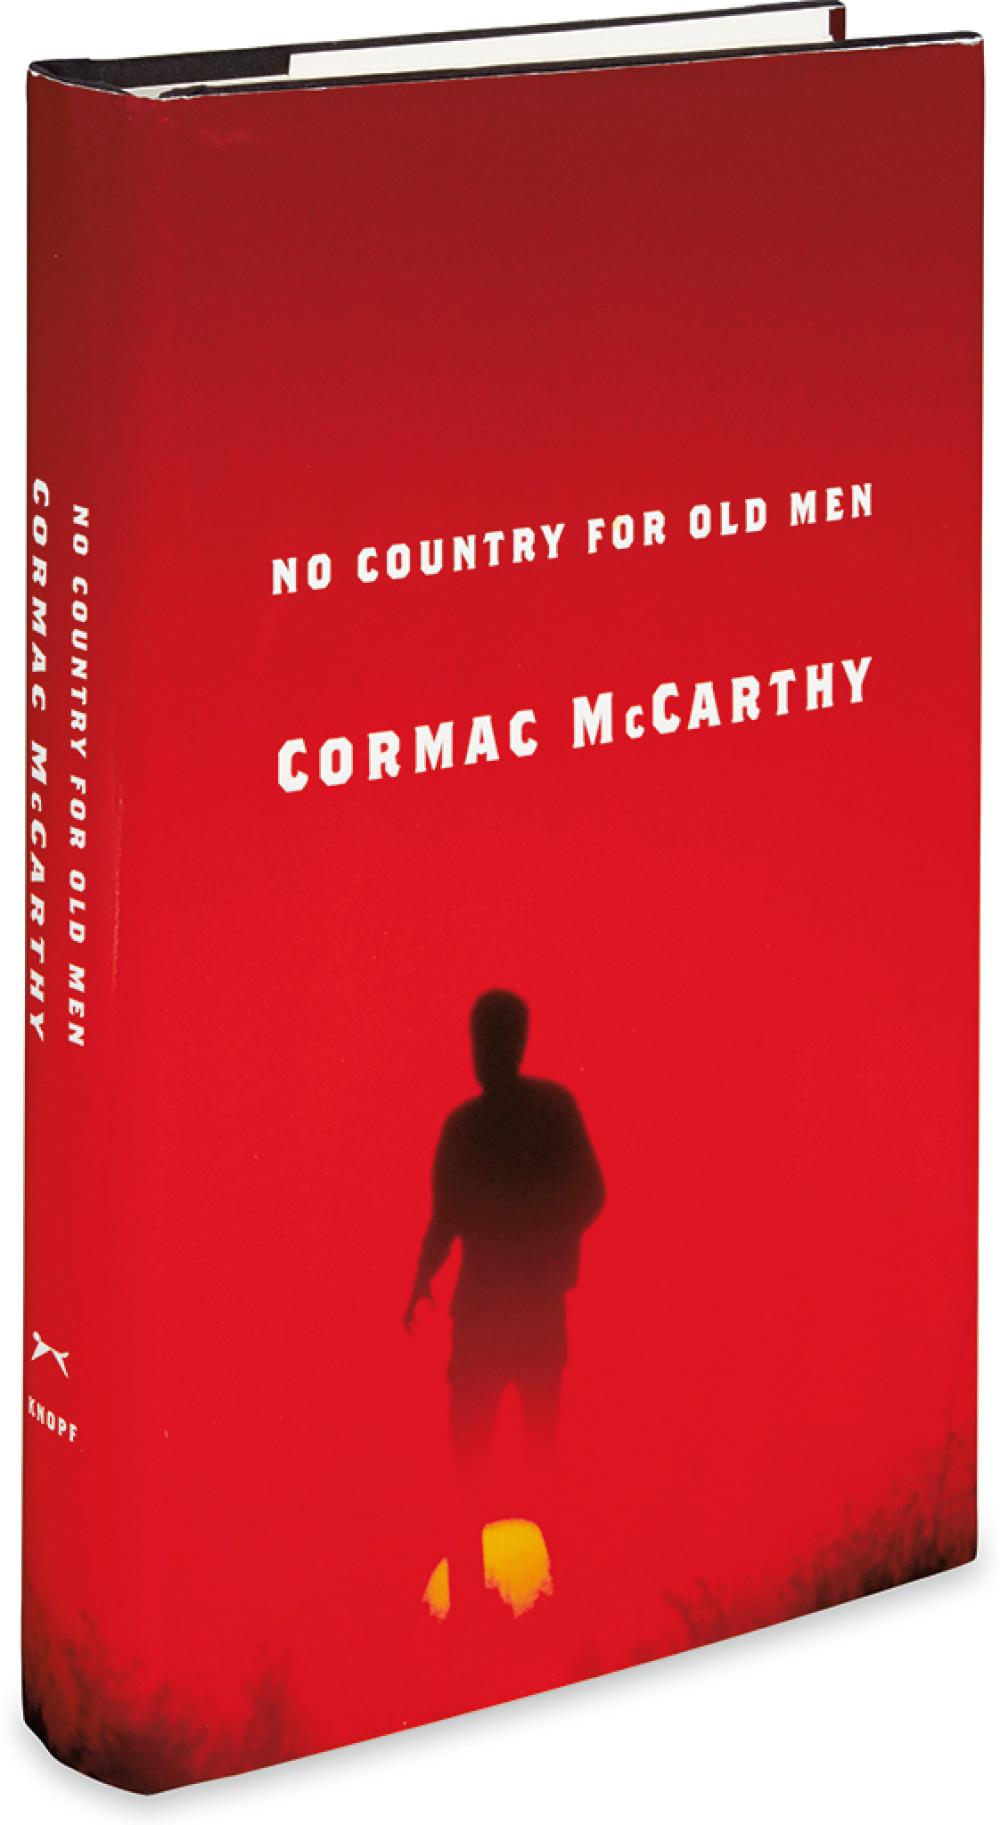 MCCARTHY, CORMAC. No Country for Old Men.